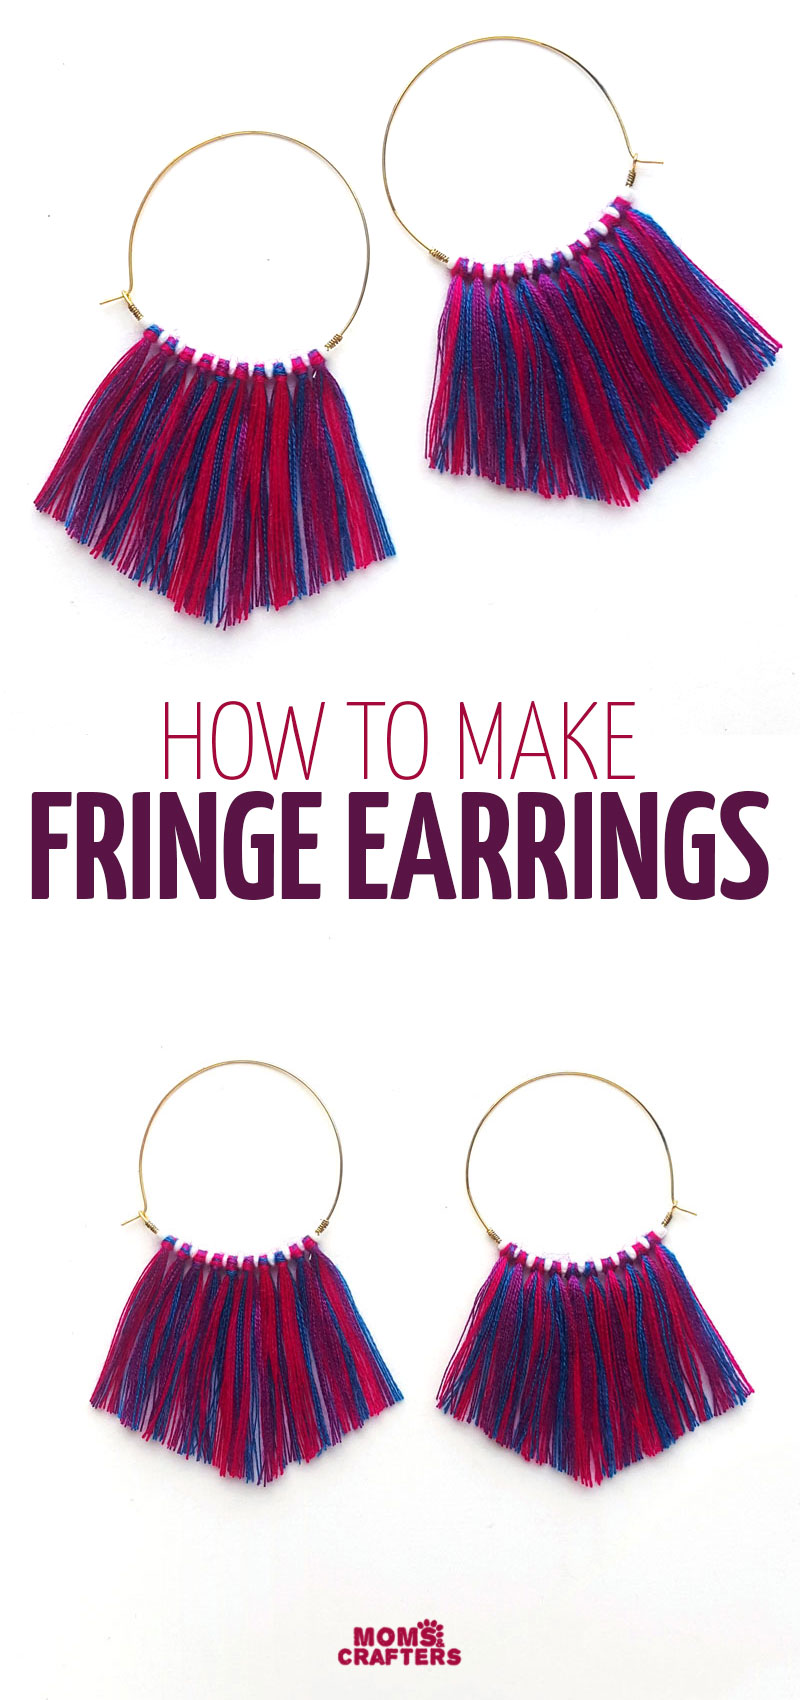 Click to learn how to make this hoop fringe earrings DIY TUTORIAL! This fun jewelry making project for beginners and teens is an easy and cheap idea for making earrings.